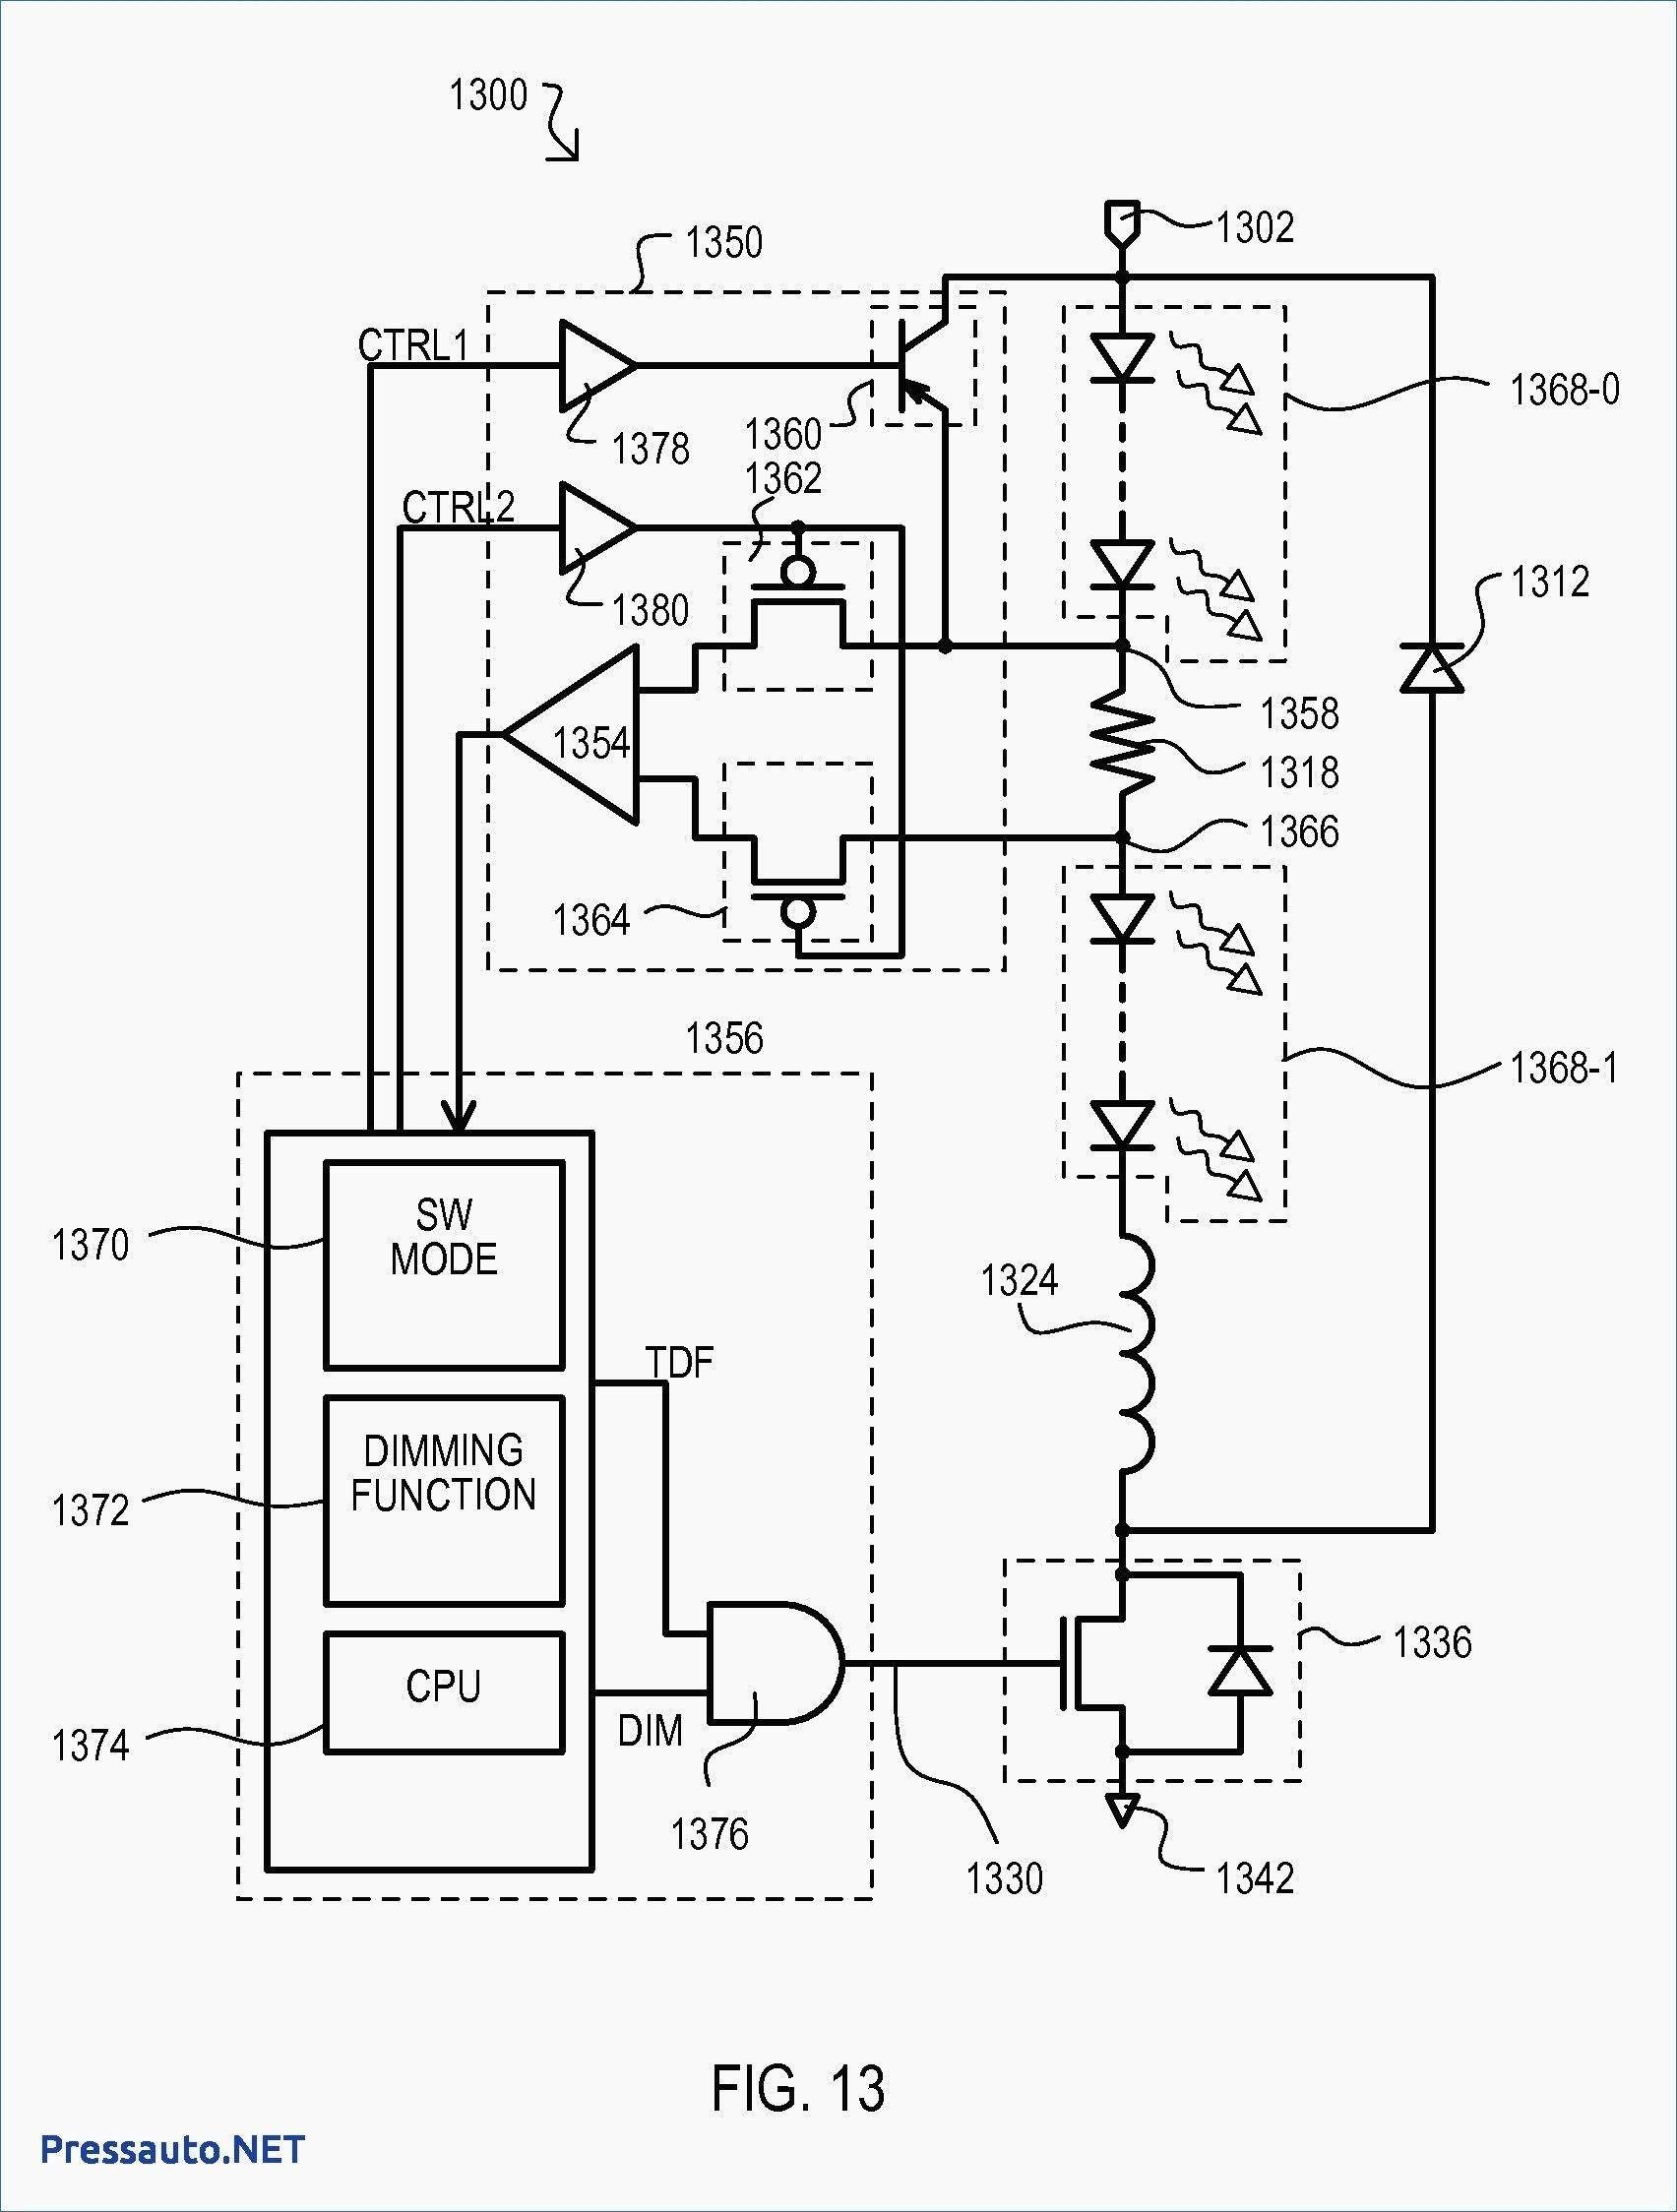 small resolution of unique house electrical wiring diagram south africa diagram diagramsample diagramtemplate wiringdiagram